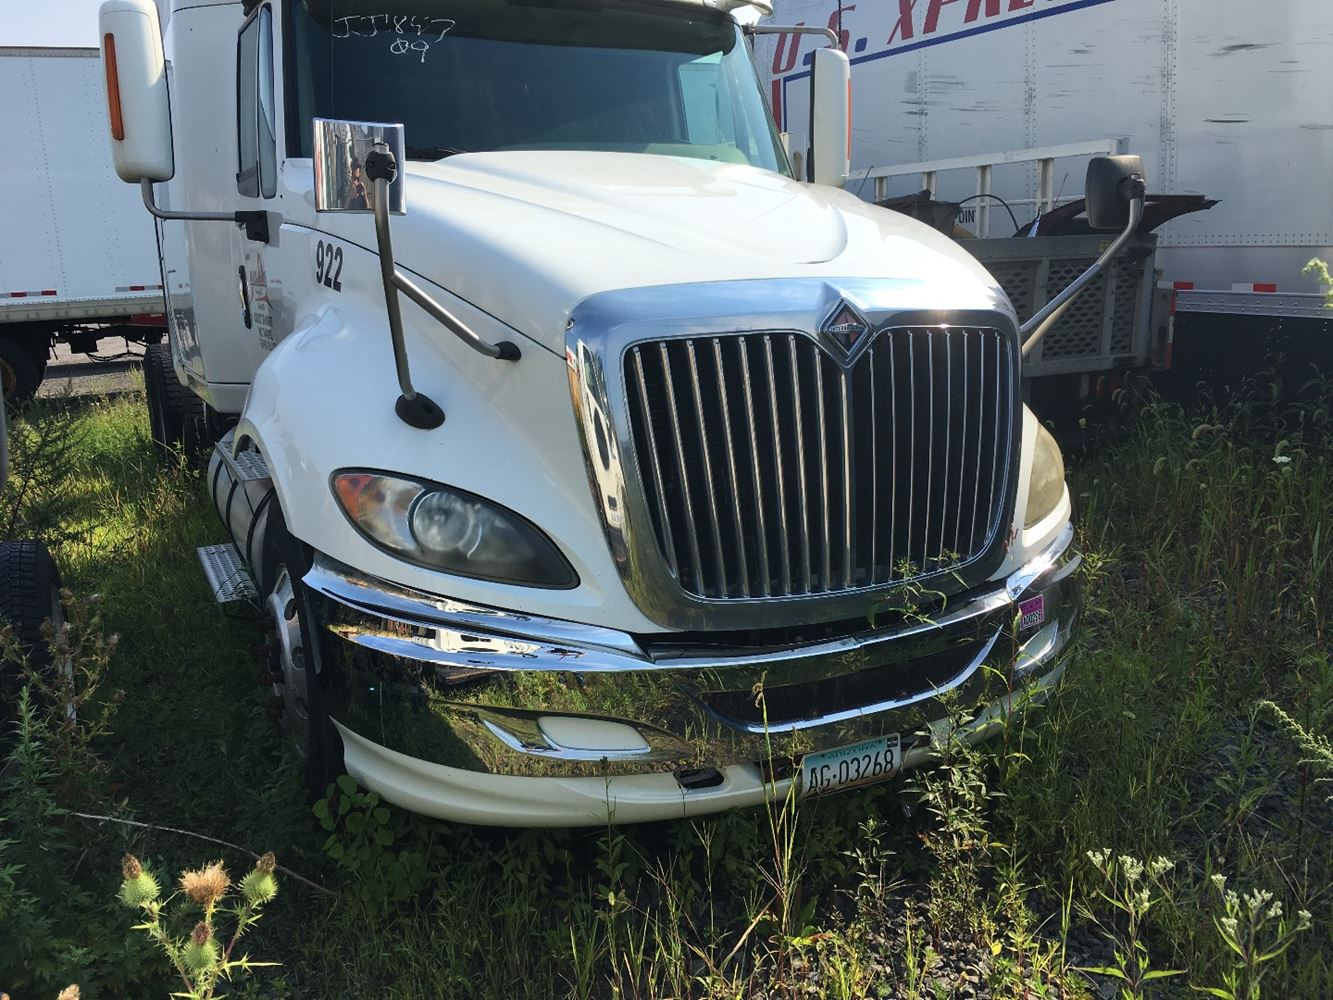 2009 International PROSTAR AlxmmurX1WG8_f?h=300&w=500&mode=max salvage heavy duty international prostar trucks tpi 2009 international prostar wiring diagram at edmiracle.co